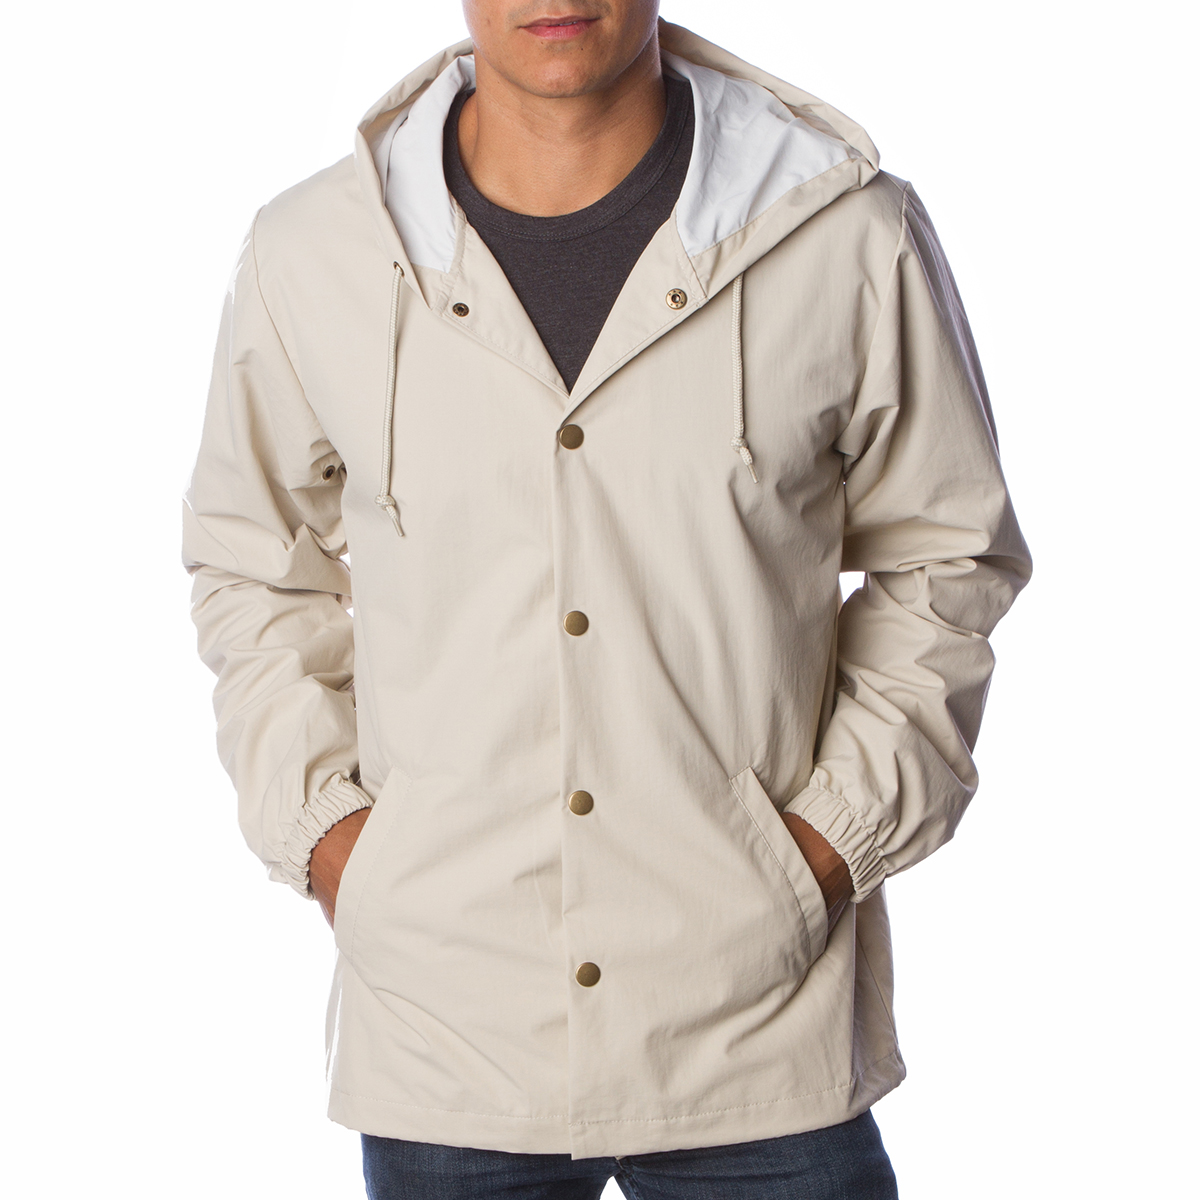 5ee60c8b7 EXP95NB Independent Trading Company Water Resistant Hooded ...